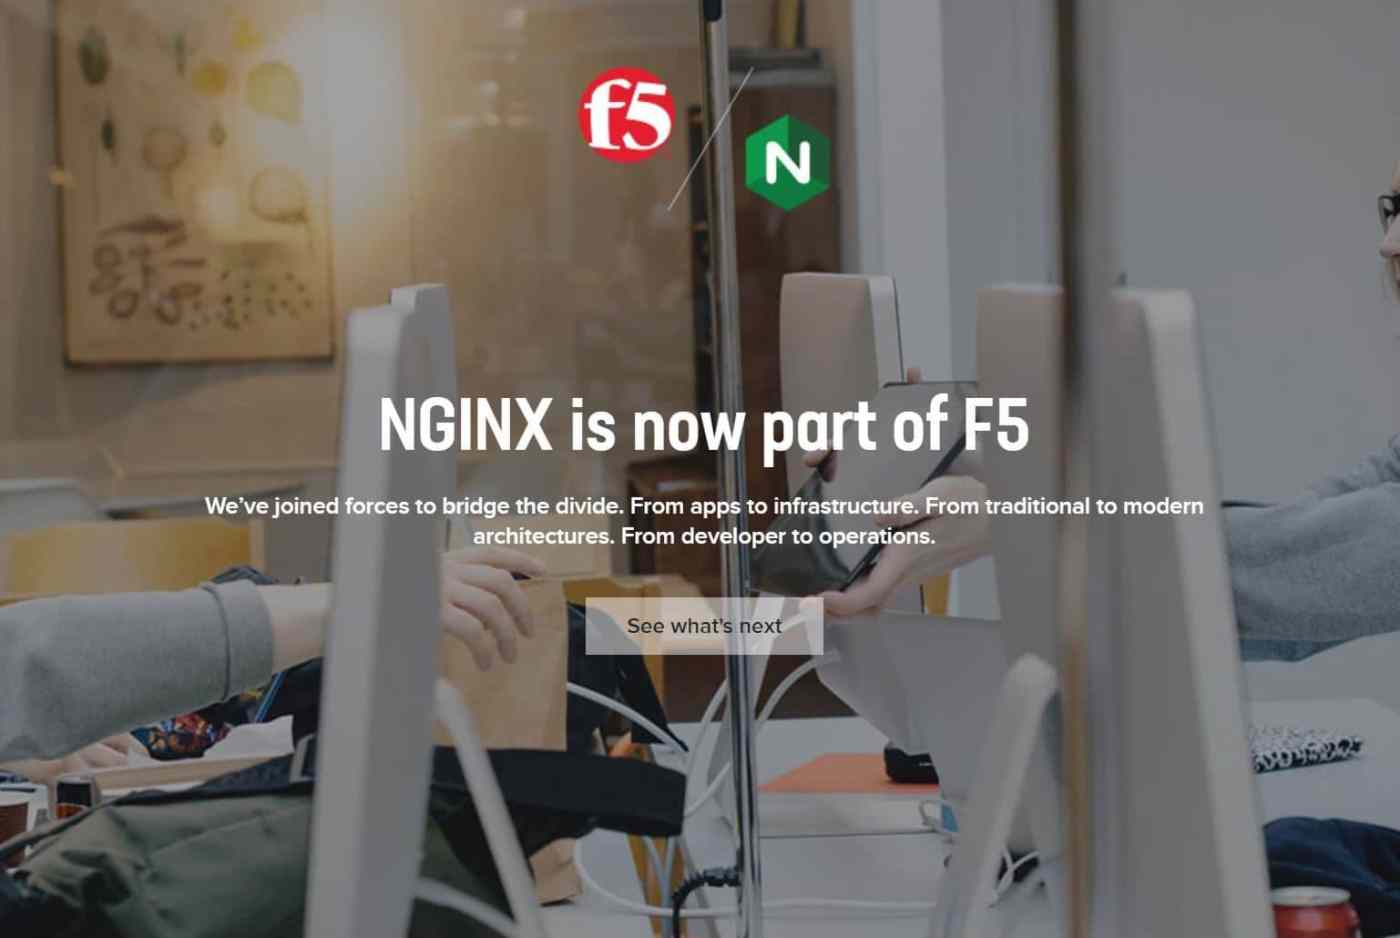 NGINX Inc acquired by F5 Networks